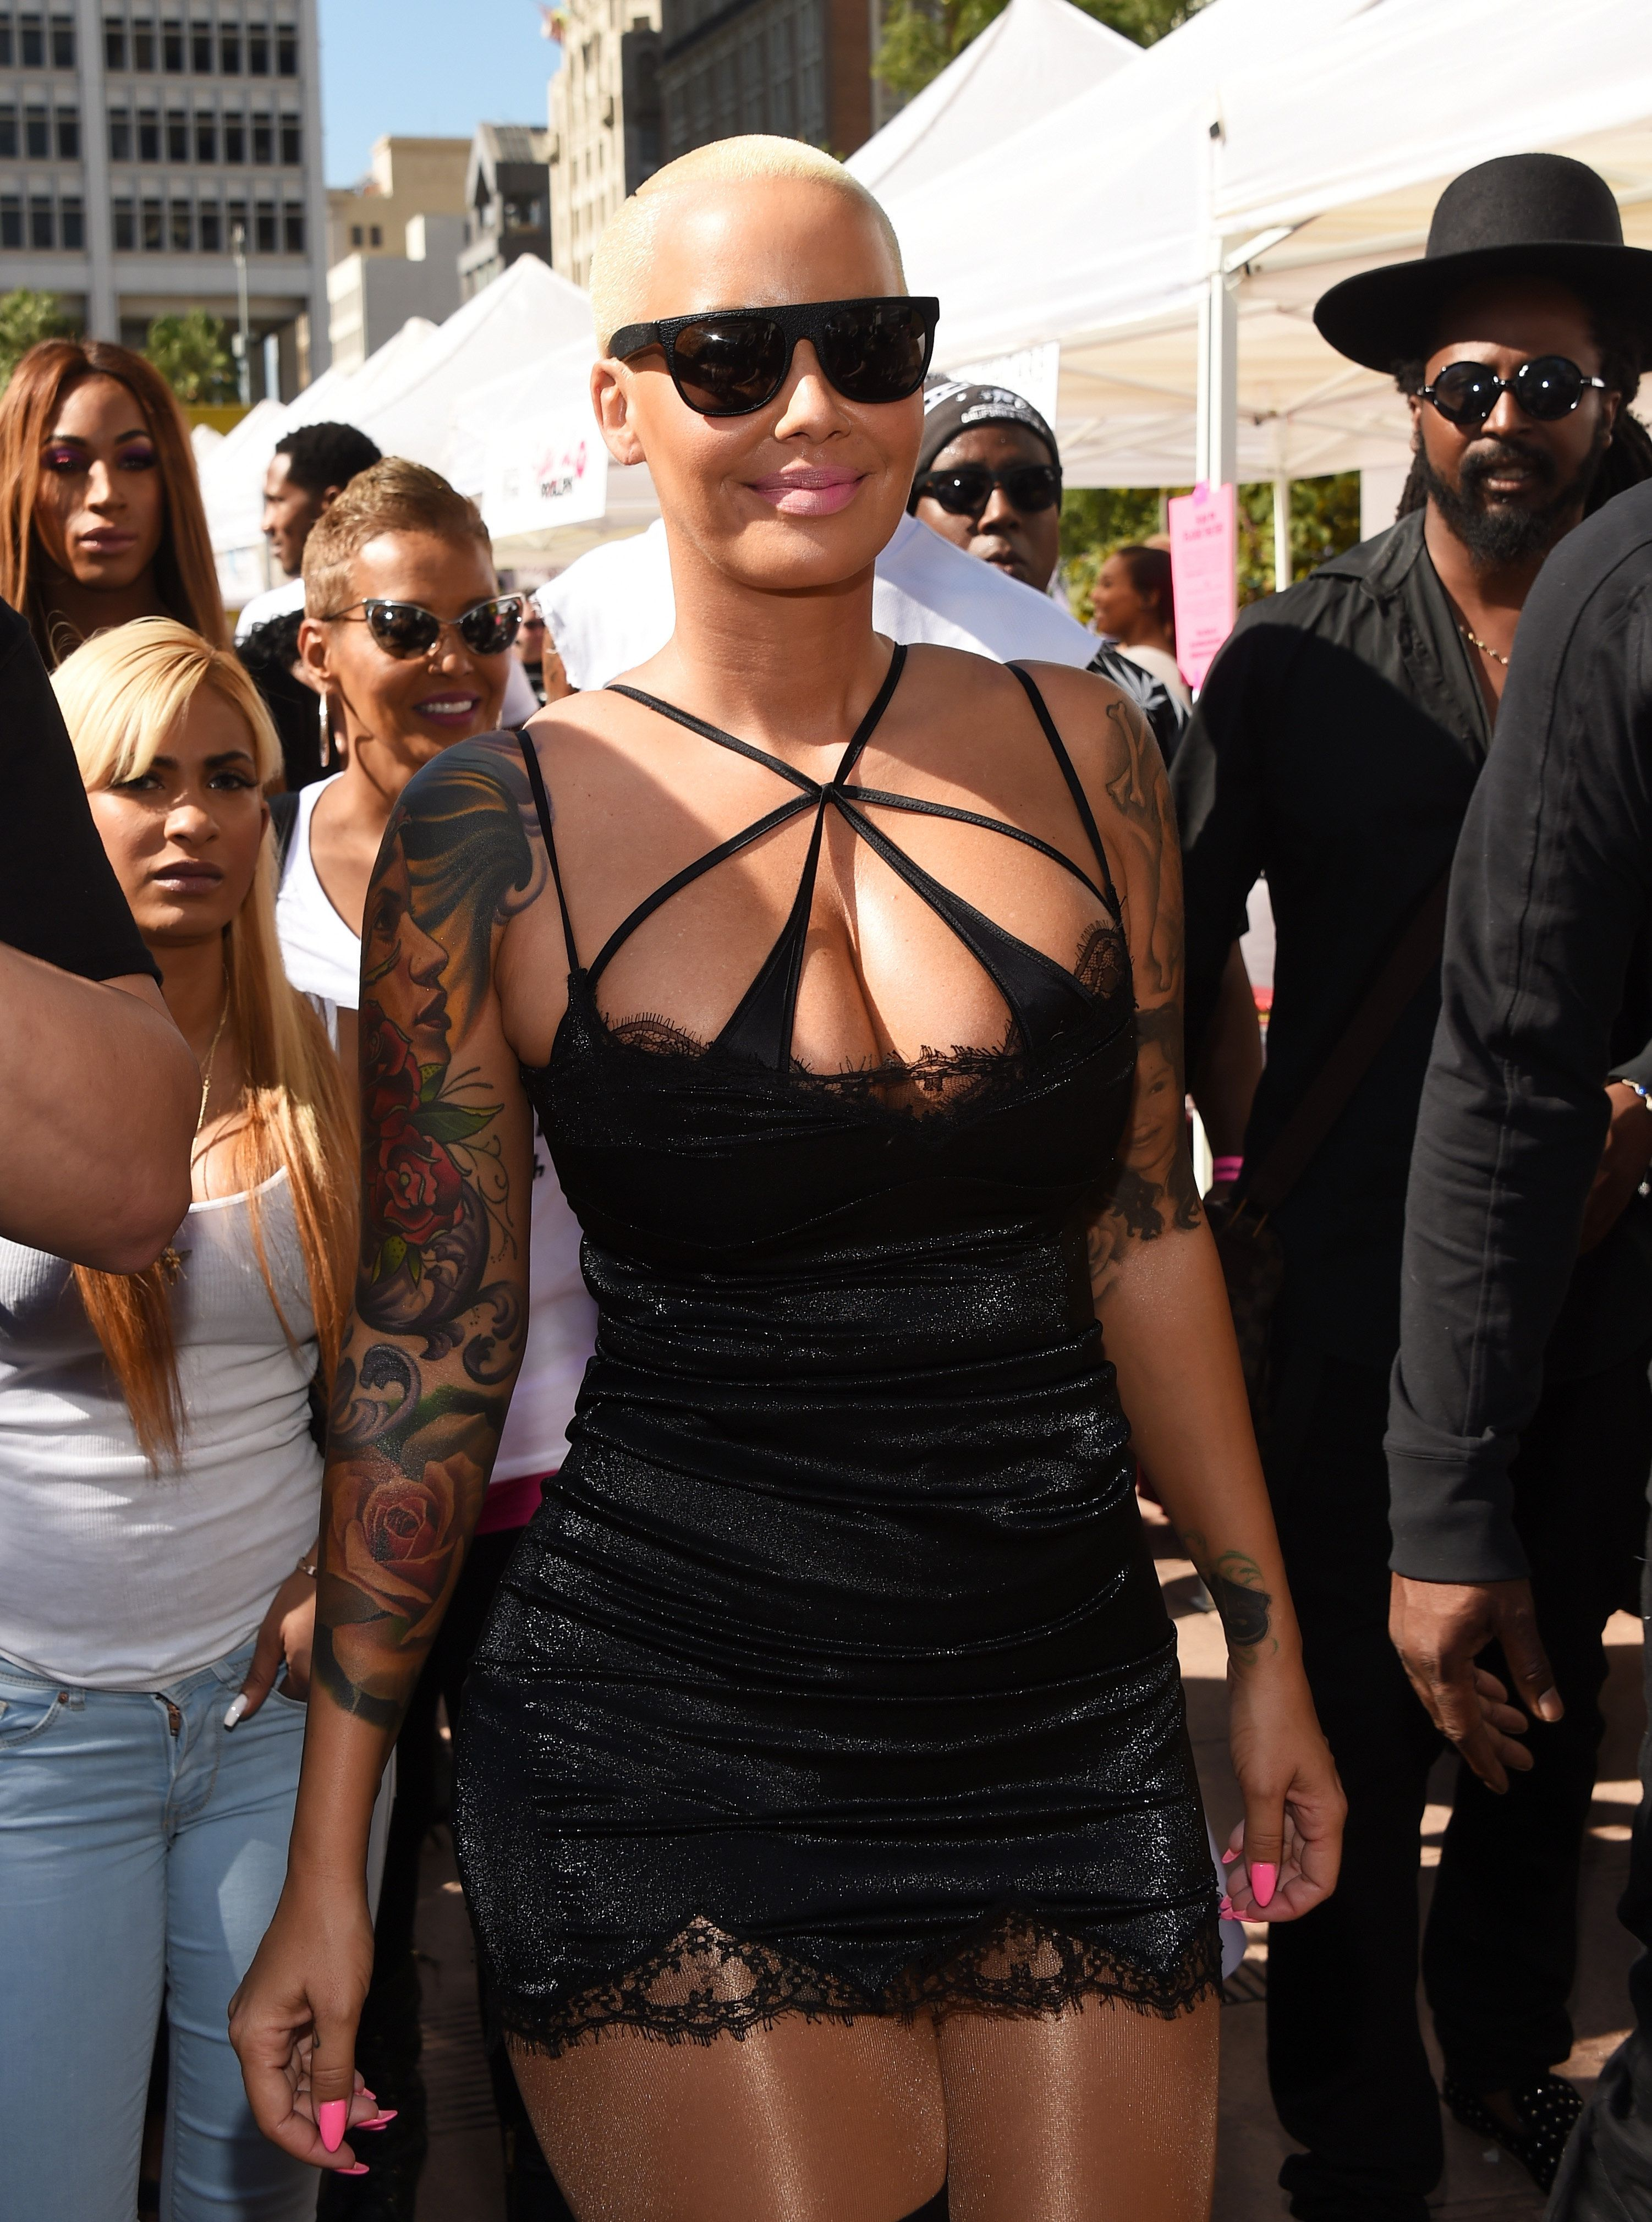 LOS ANGELES, CA - OCTOBER 03:  Model Amber Rose attends the Amber Rose SlutWalk LA at Pershing Square on October 3, 2015 in Los Angeles, California.  (Photo by Amanda Edwards/WireImage)